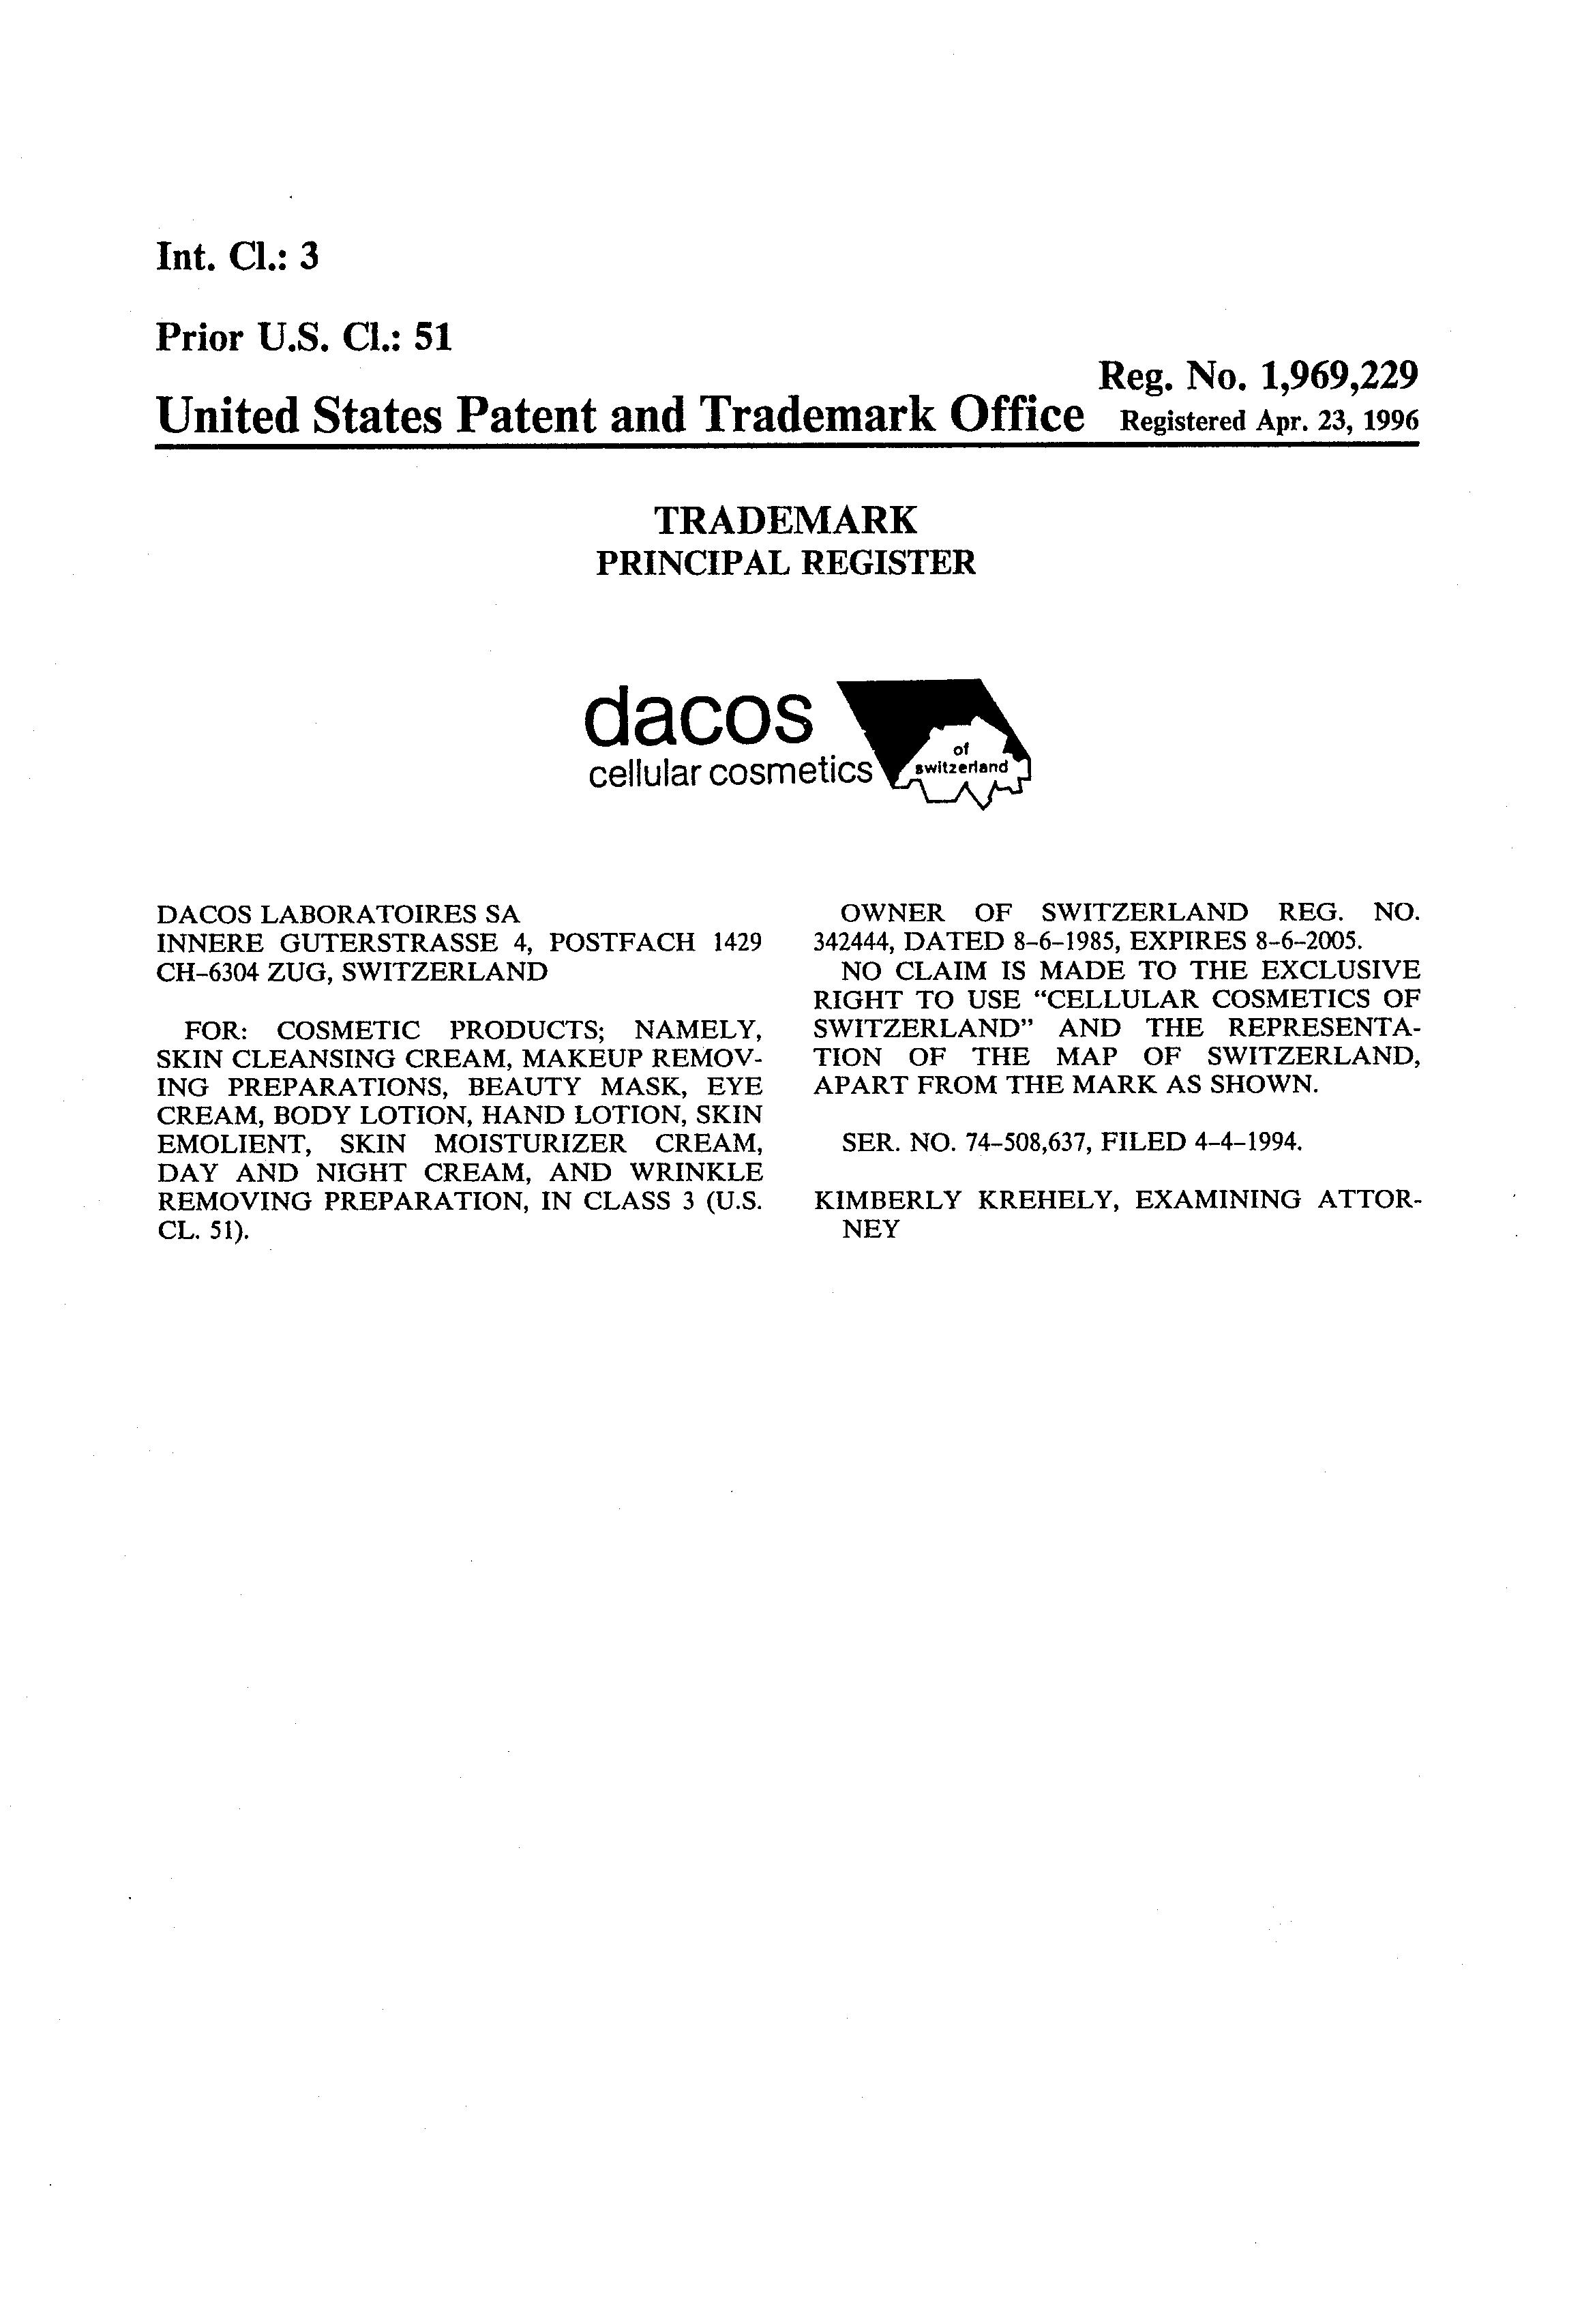 DACOS CELLULAR COSMETICS OF SWITZERLAND Details, a Report by